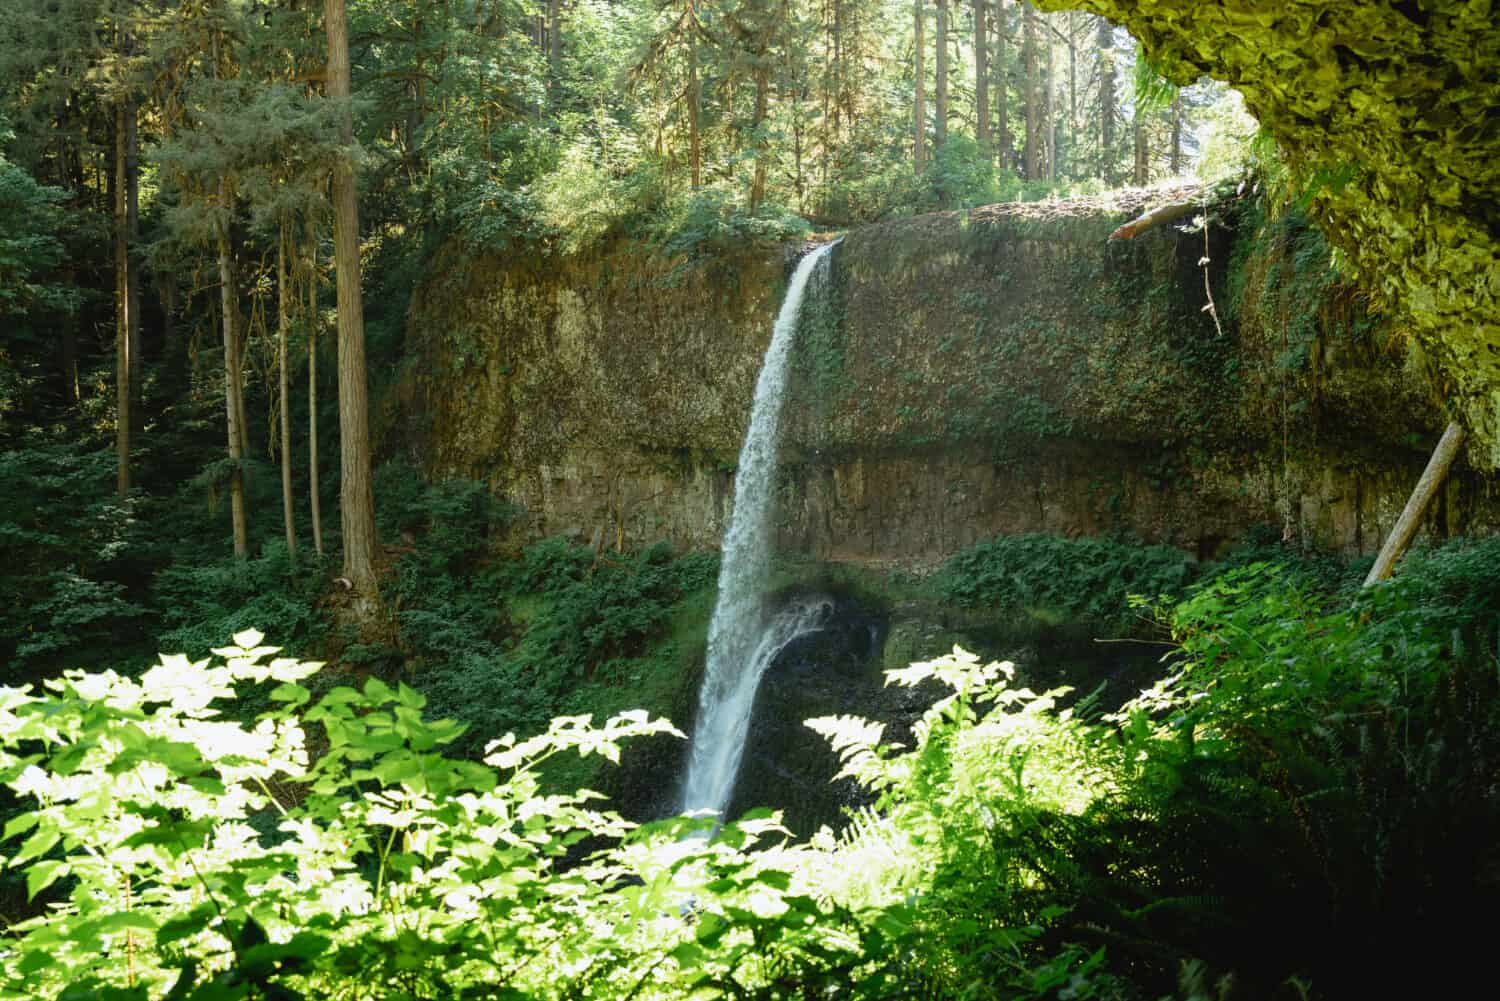 The Trail of Ten Falls - Middle North Falls